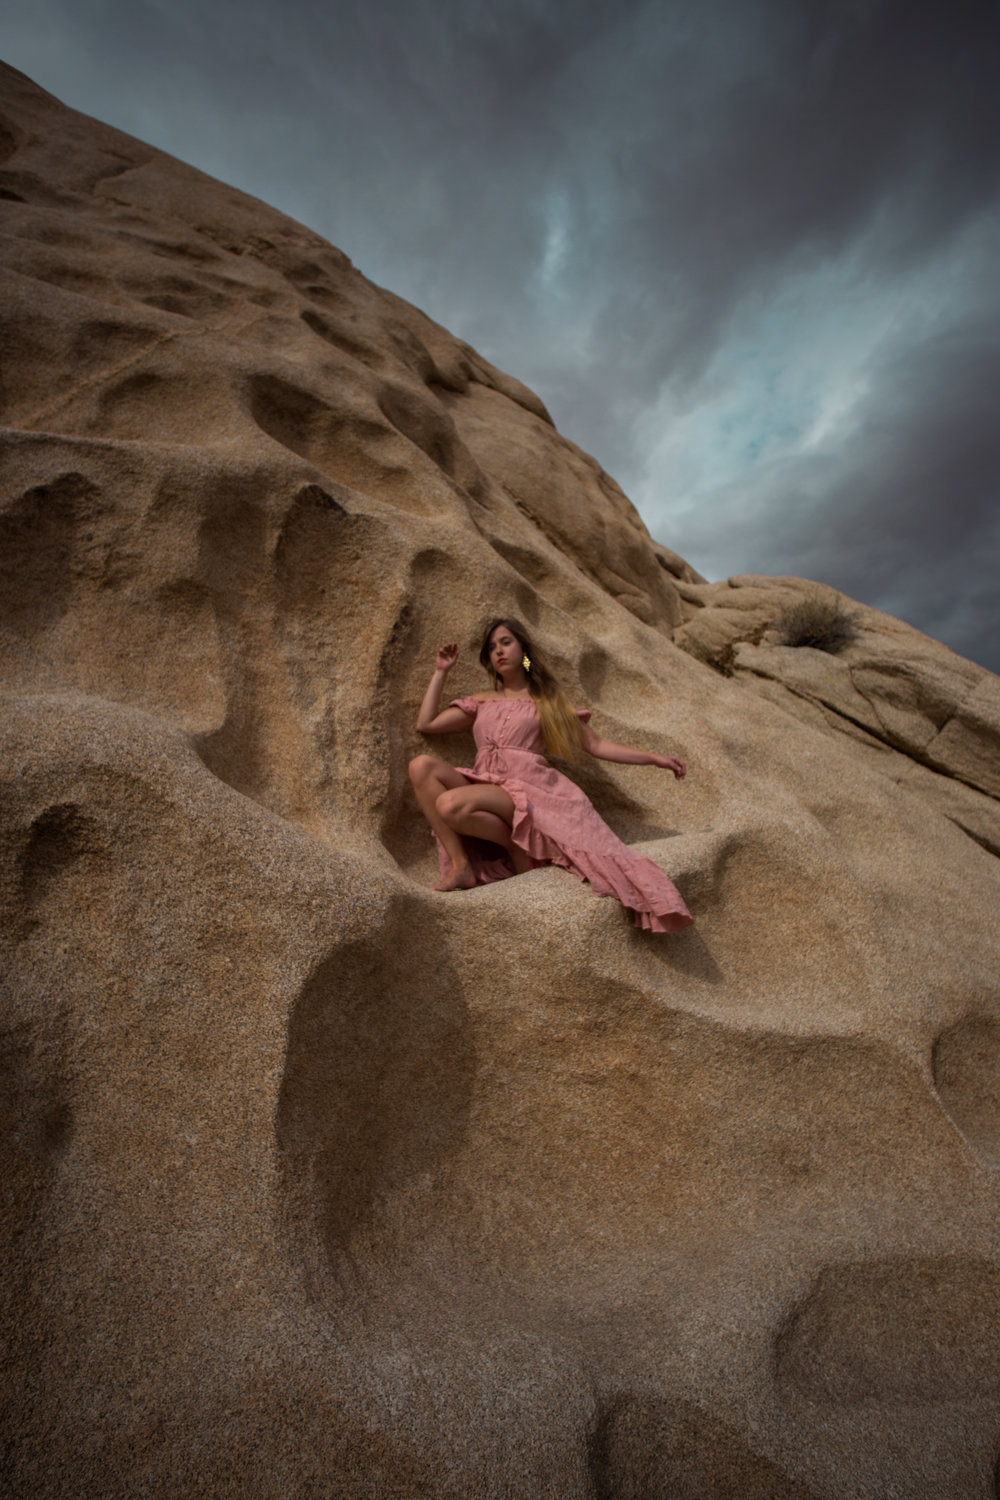 AstroBandit_JordanRose_Auguste_The_Label_LightPink_Spring_2018_Fashion_Maxi_Dress_Joshua_Tree_Storm_1.jpg